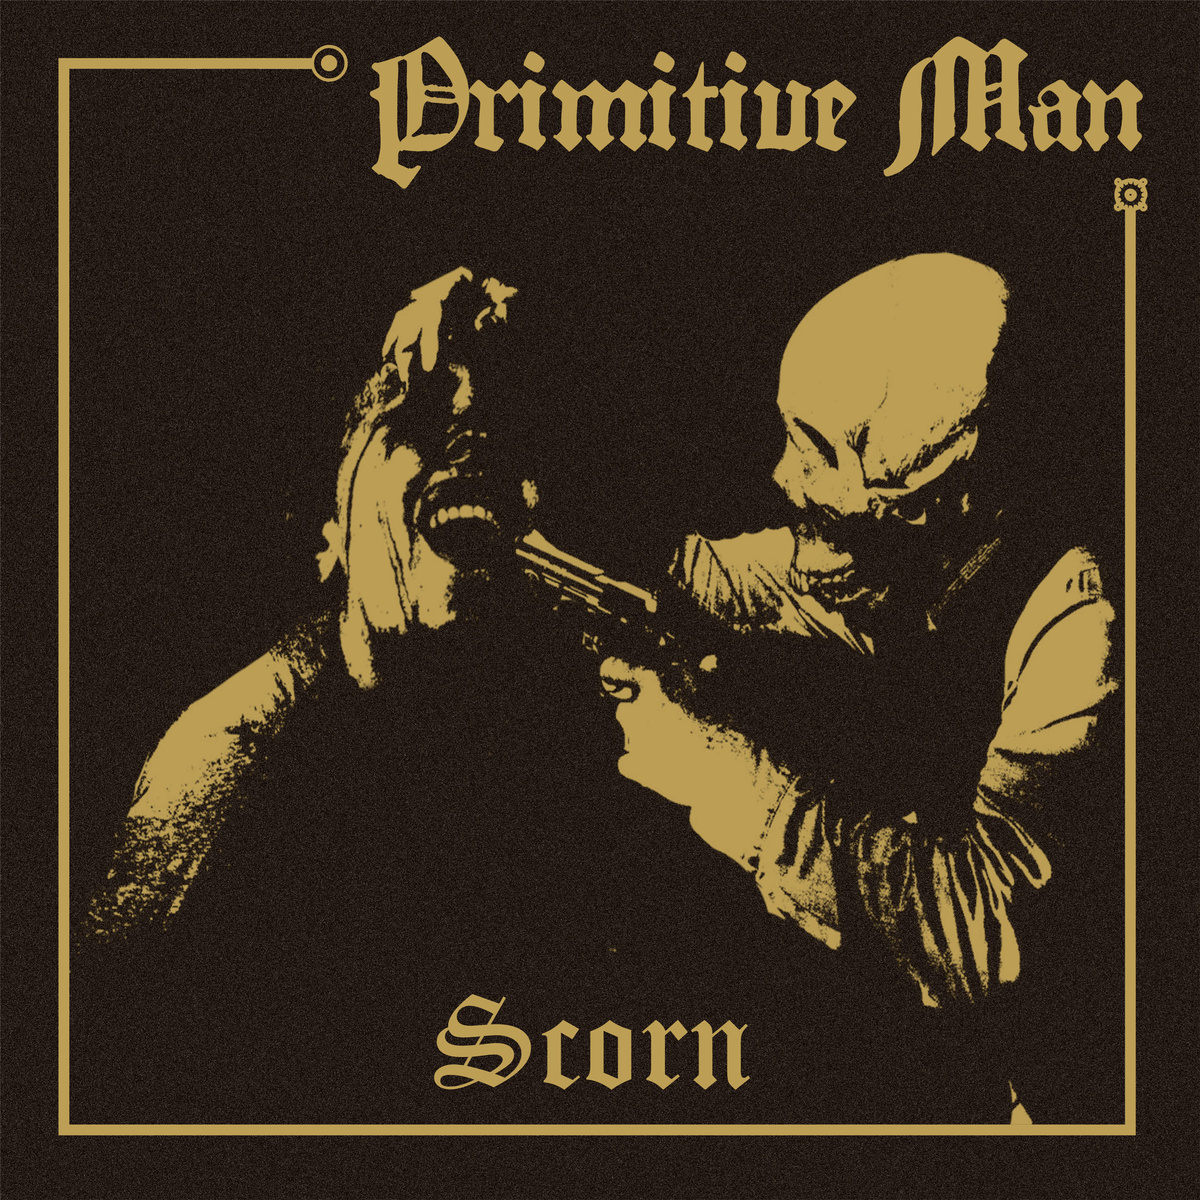 New Primitive Man Video Interview In San Francisco, California